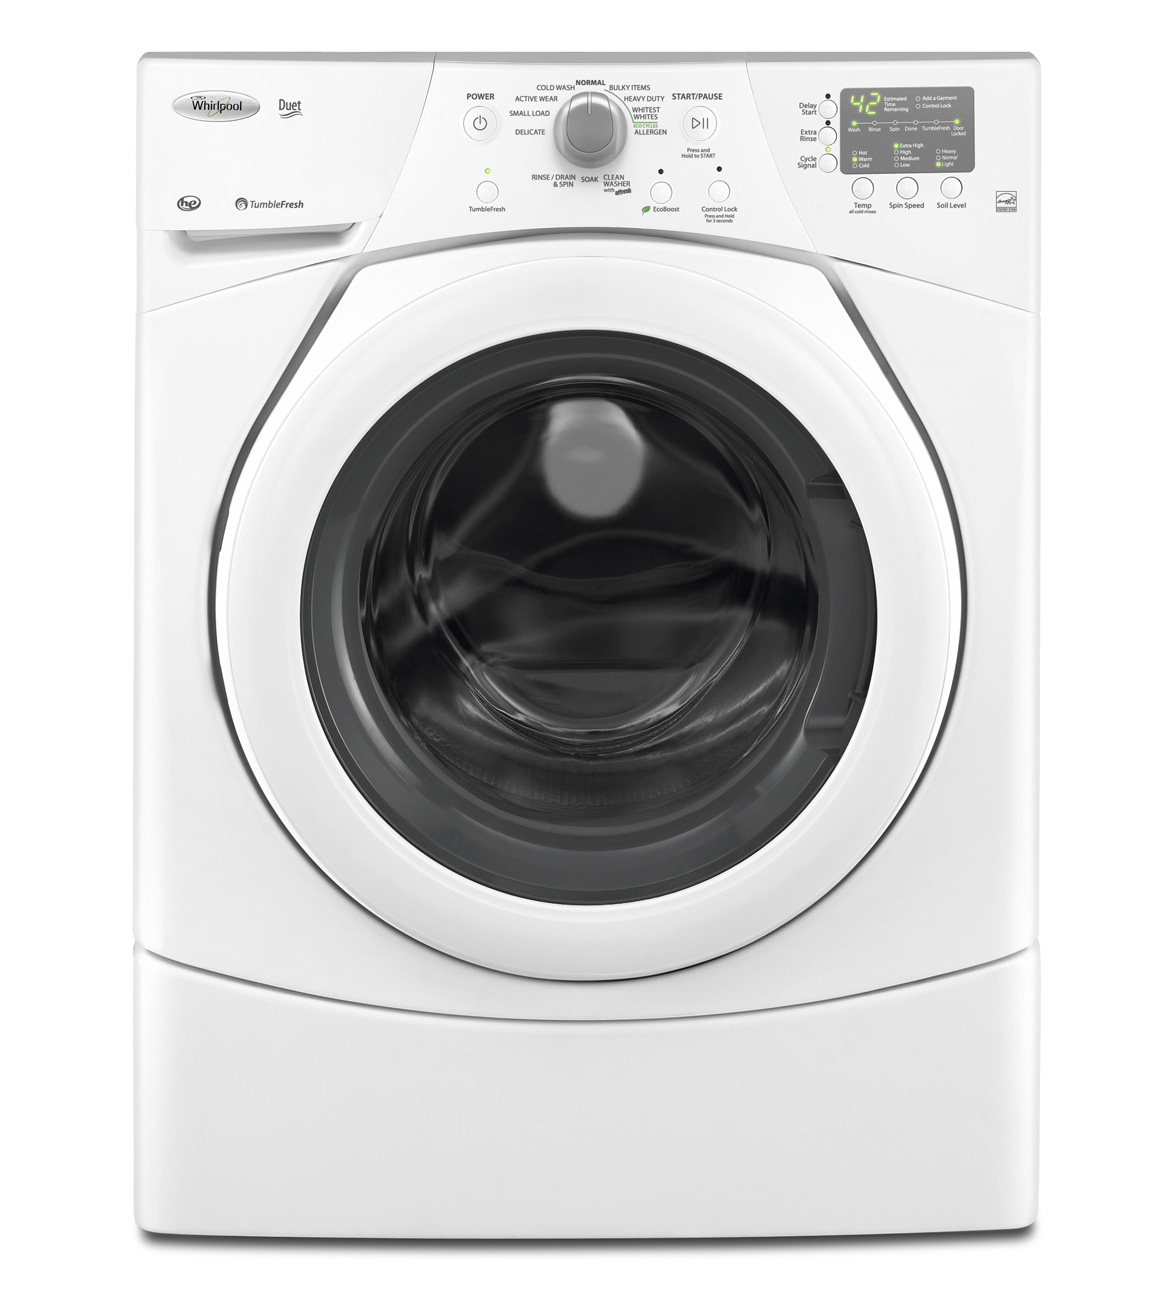 Review of Whirlpool Duet 3.5 cu. ft. High-Efficiency Front Load Washer in White (Model: WFW9151YW)